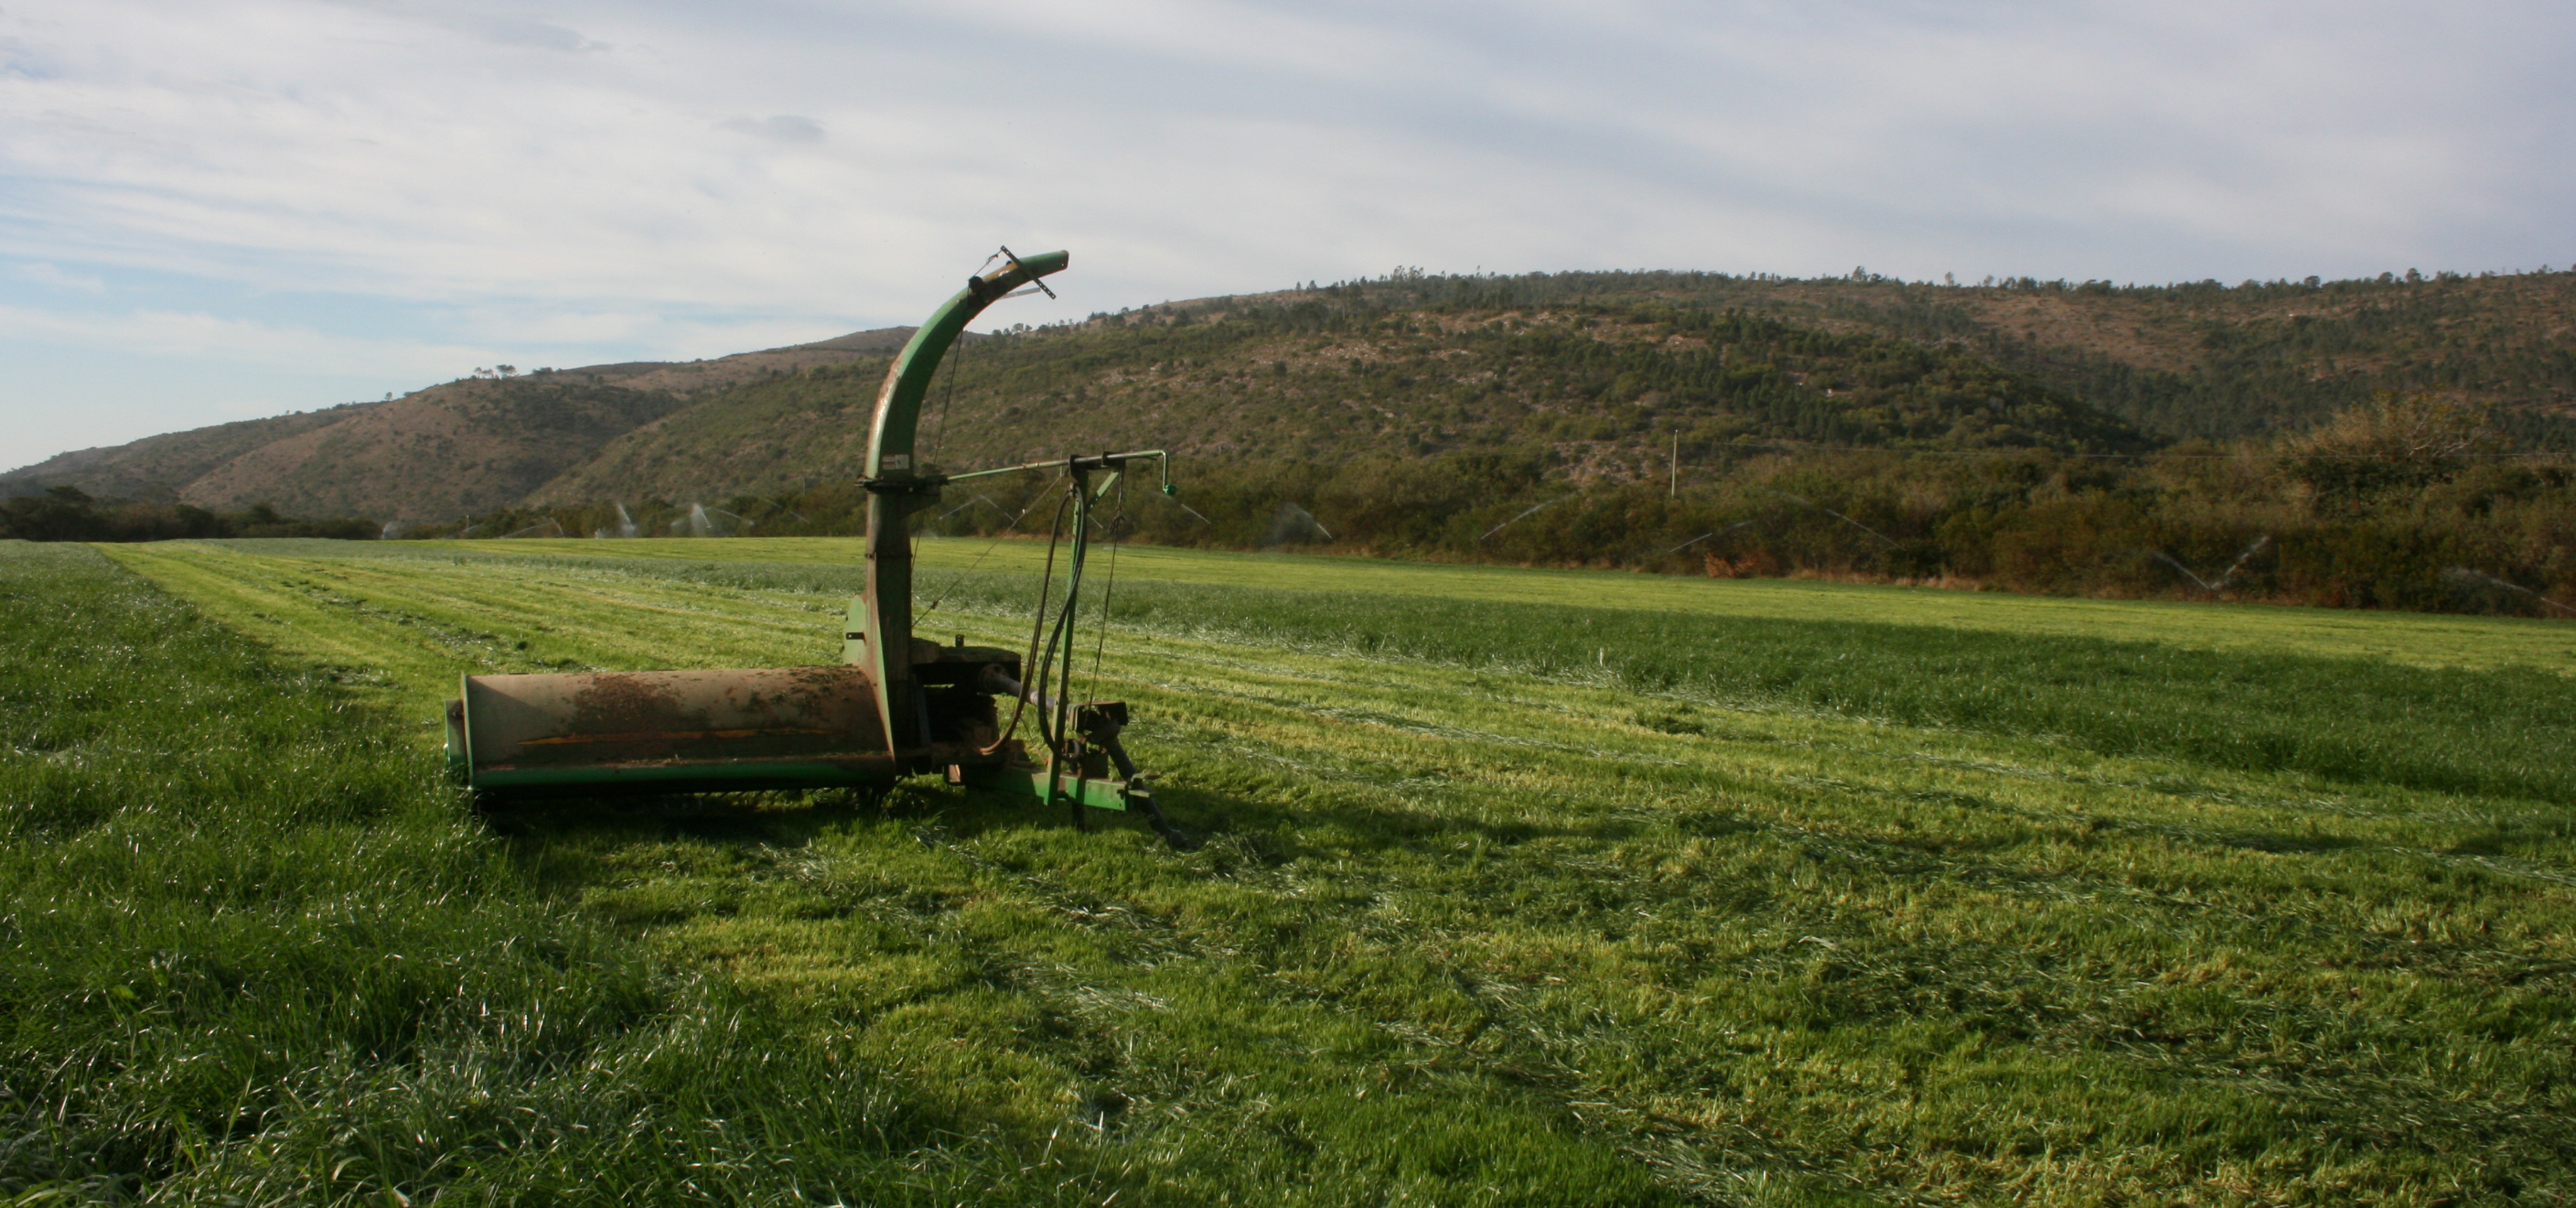 open grass field with equipment on